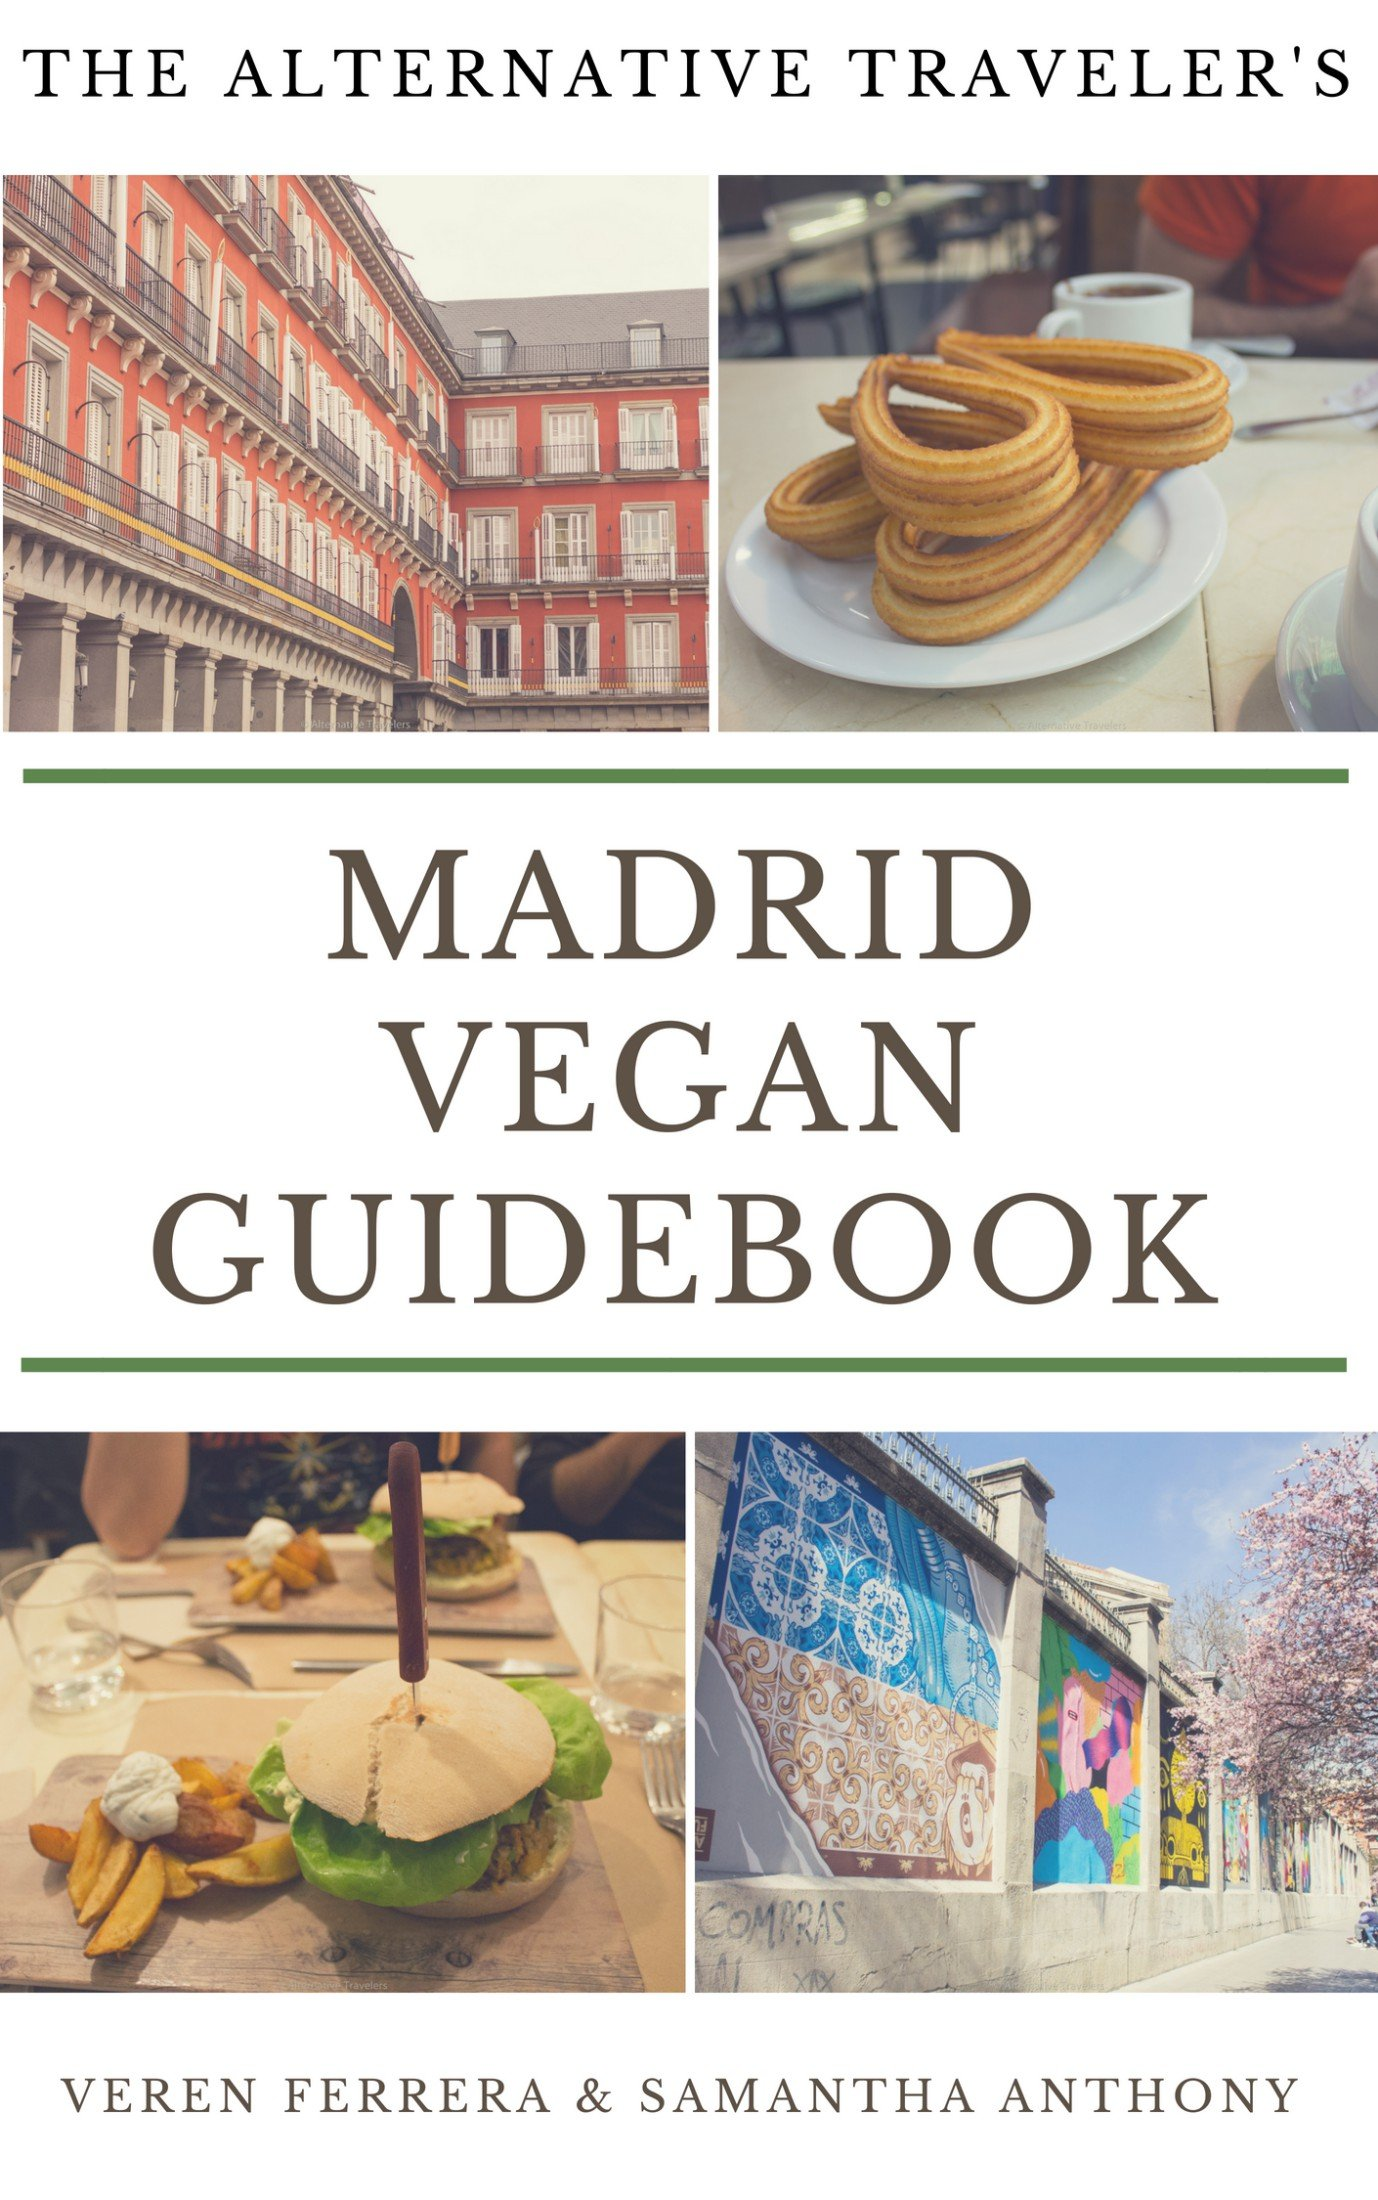 Madrid Vegan Guidebook cover